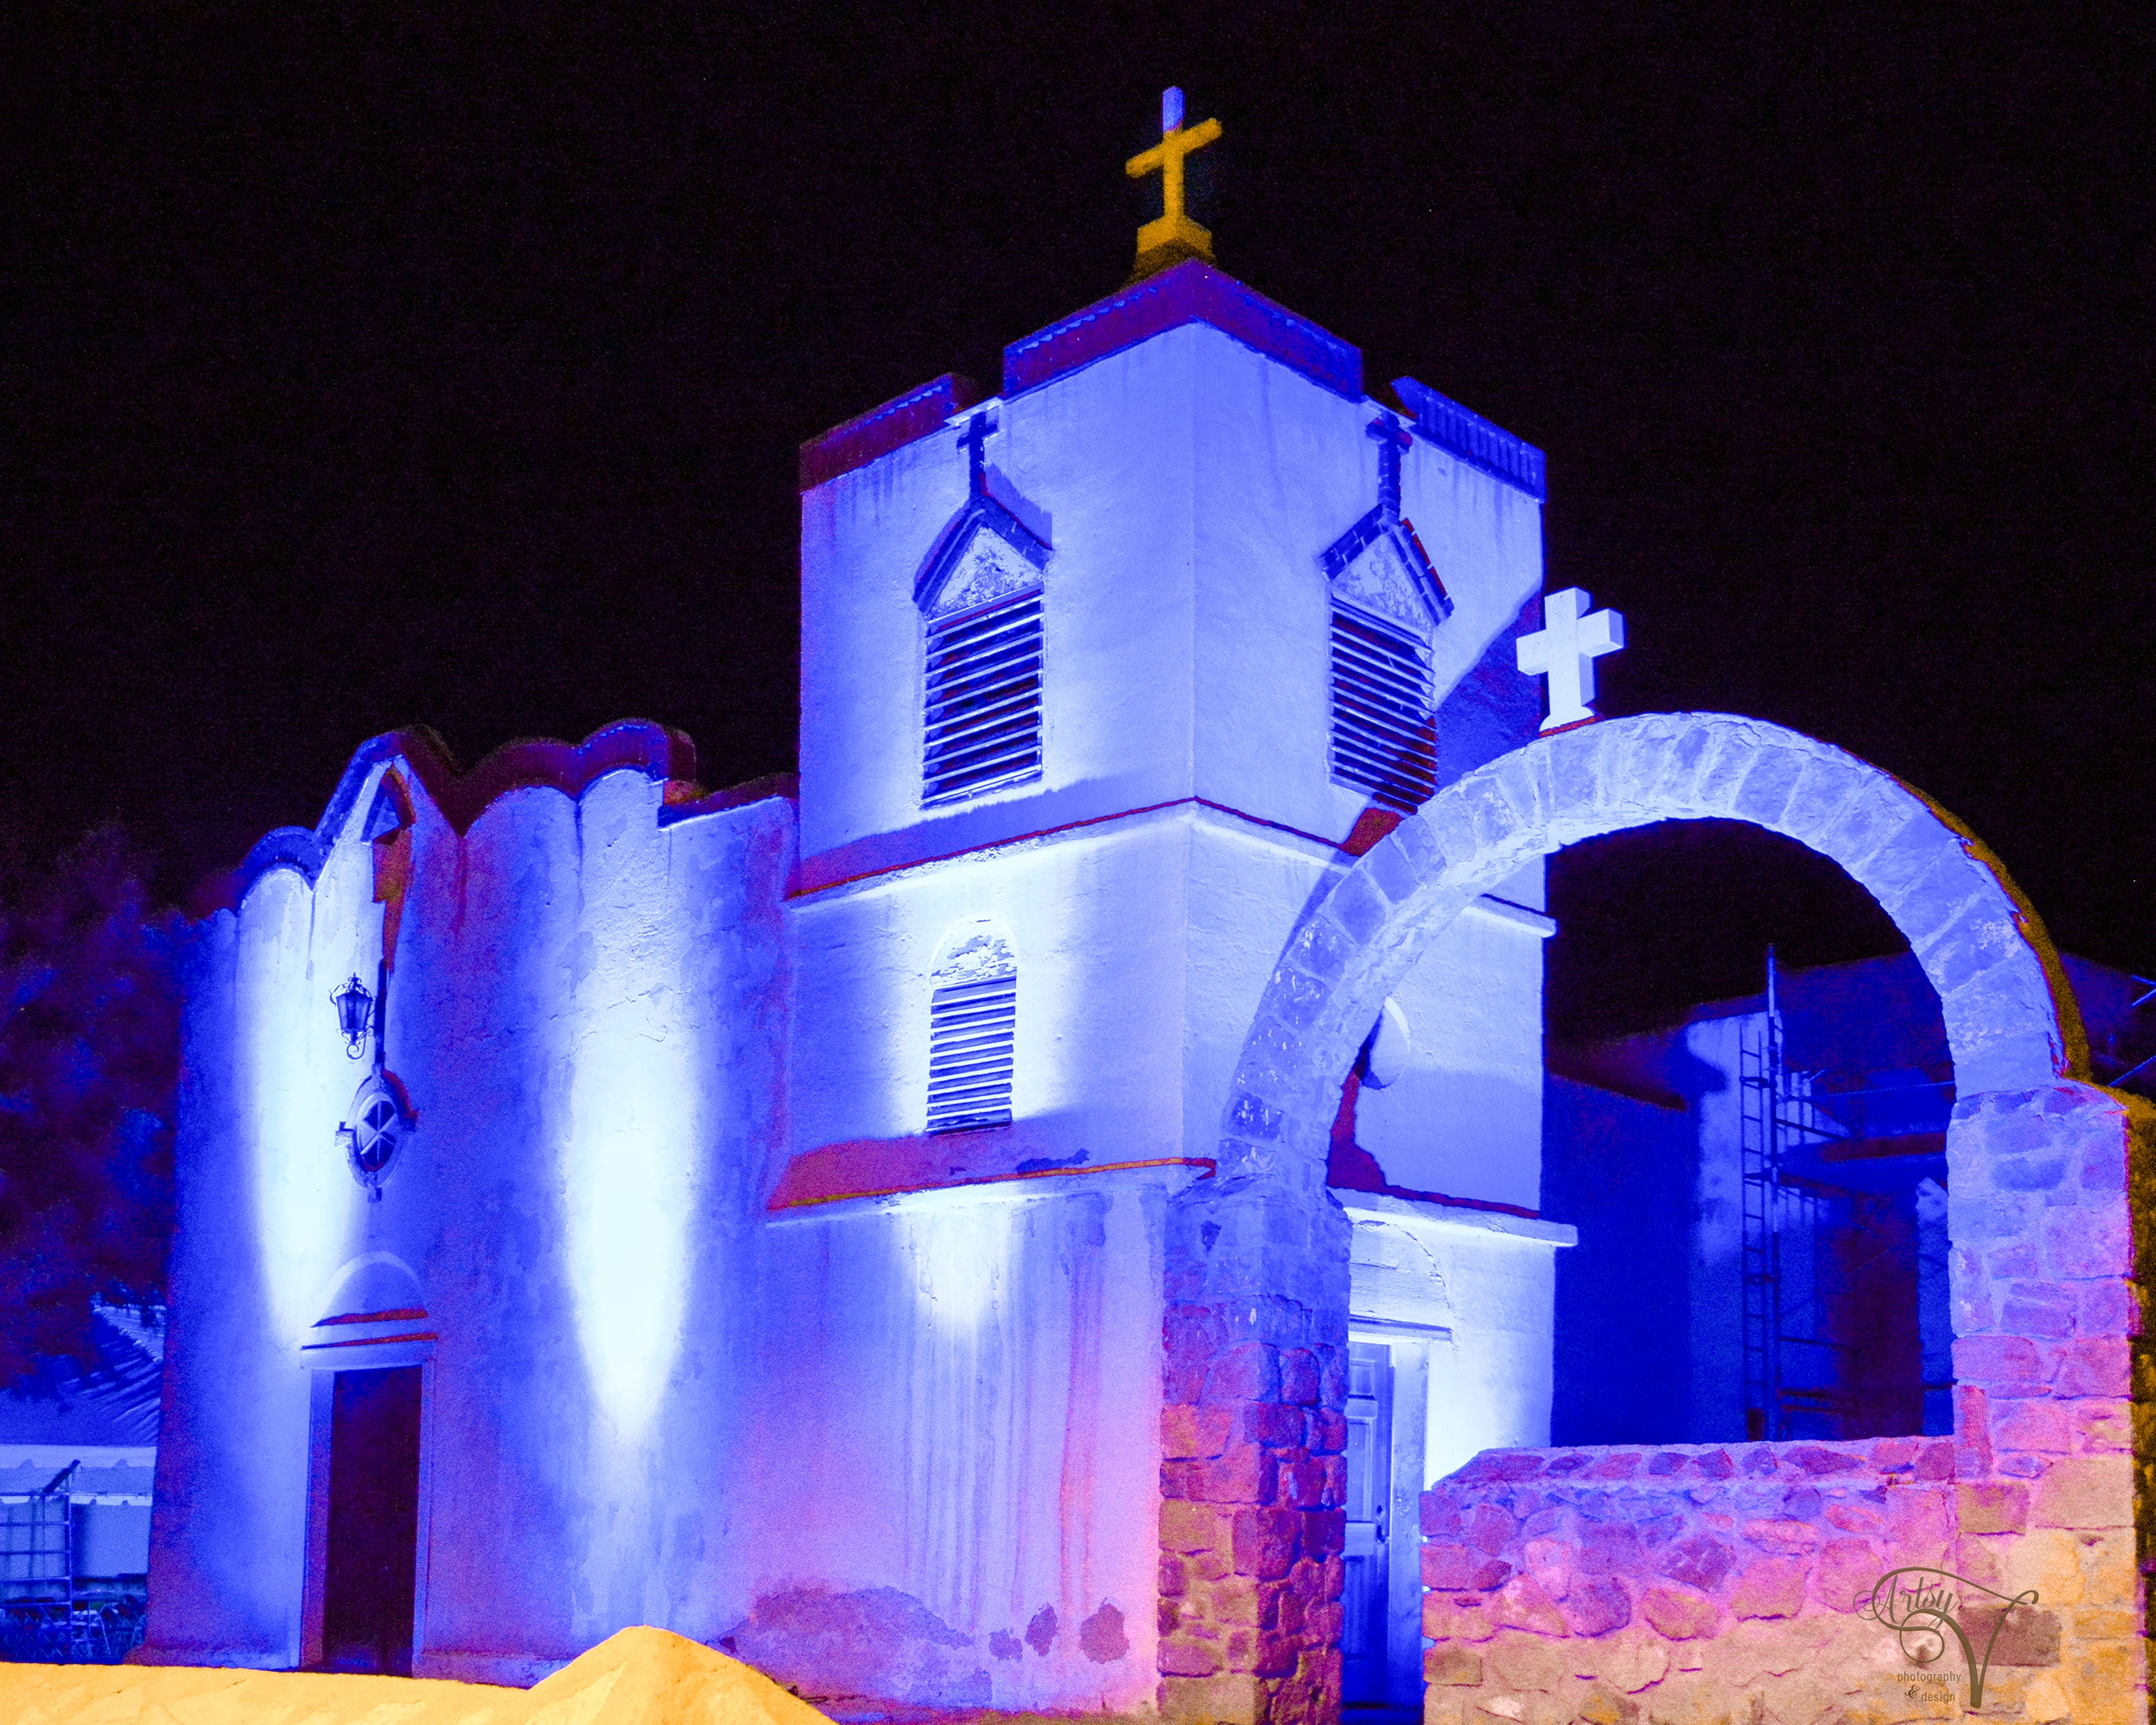 Our Lady of Purification Catholic Church lights up for fiesta | Las Cruces Sun